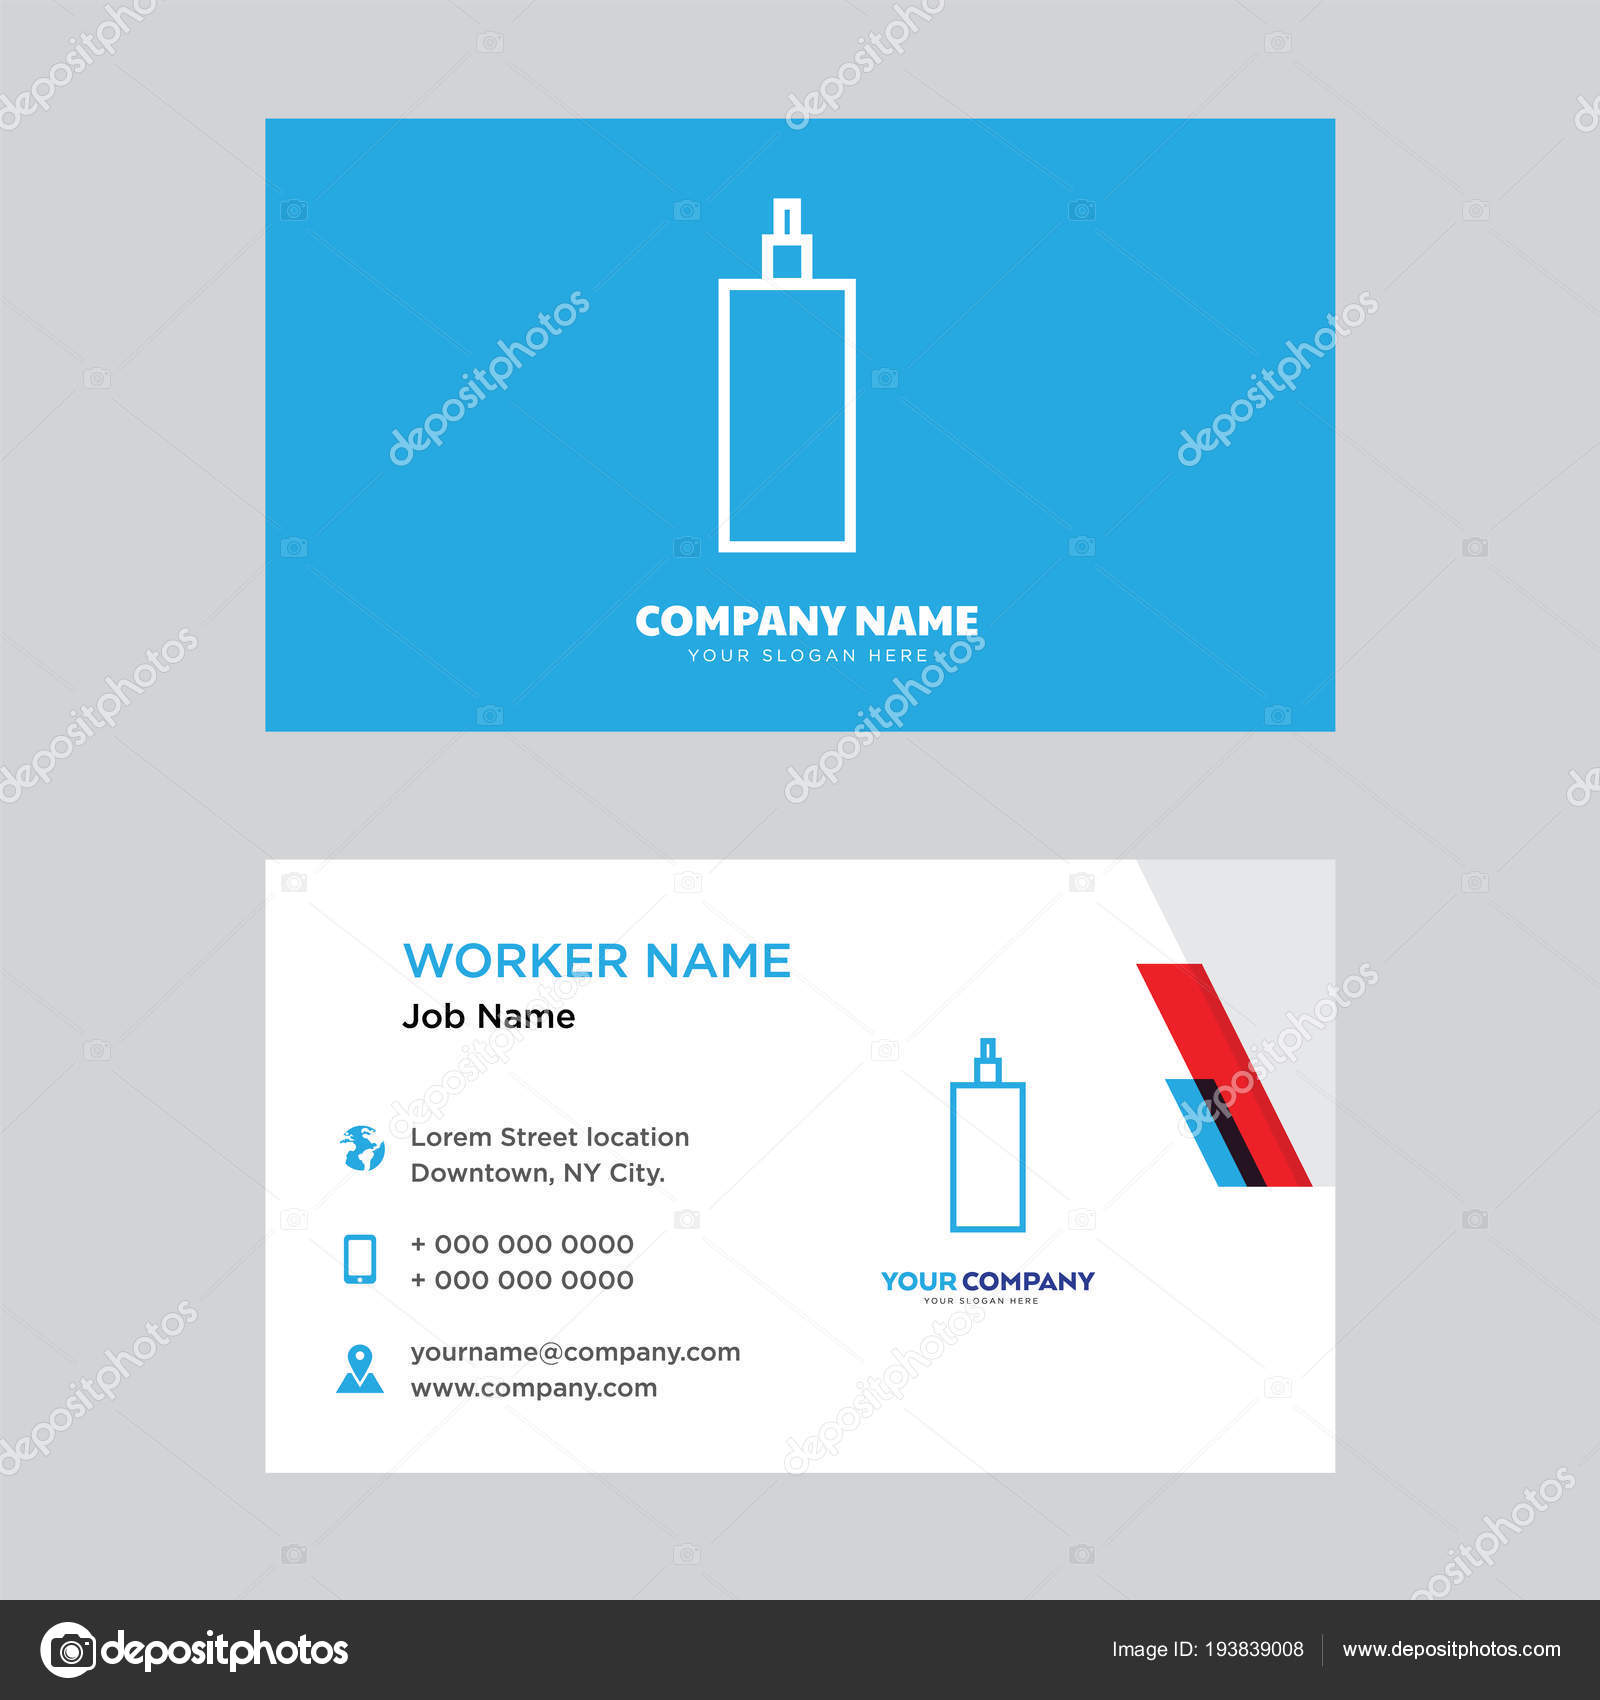 Water business card design stock vector vectorbest 193839008 water business card design stock vector colourmoves